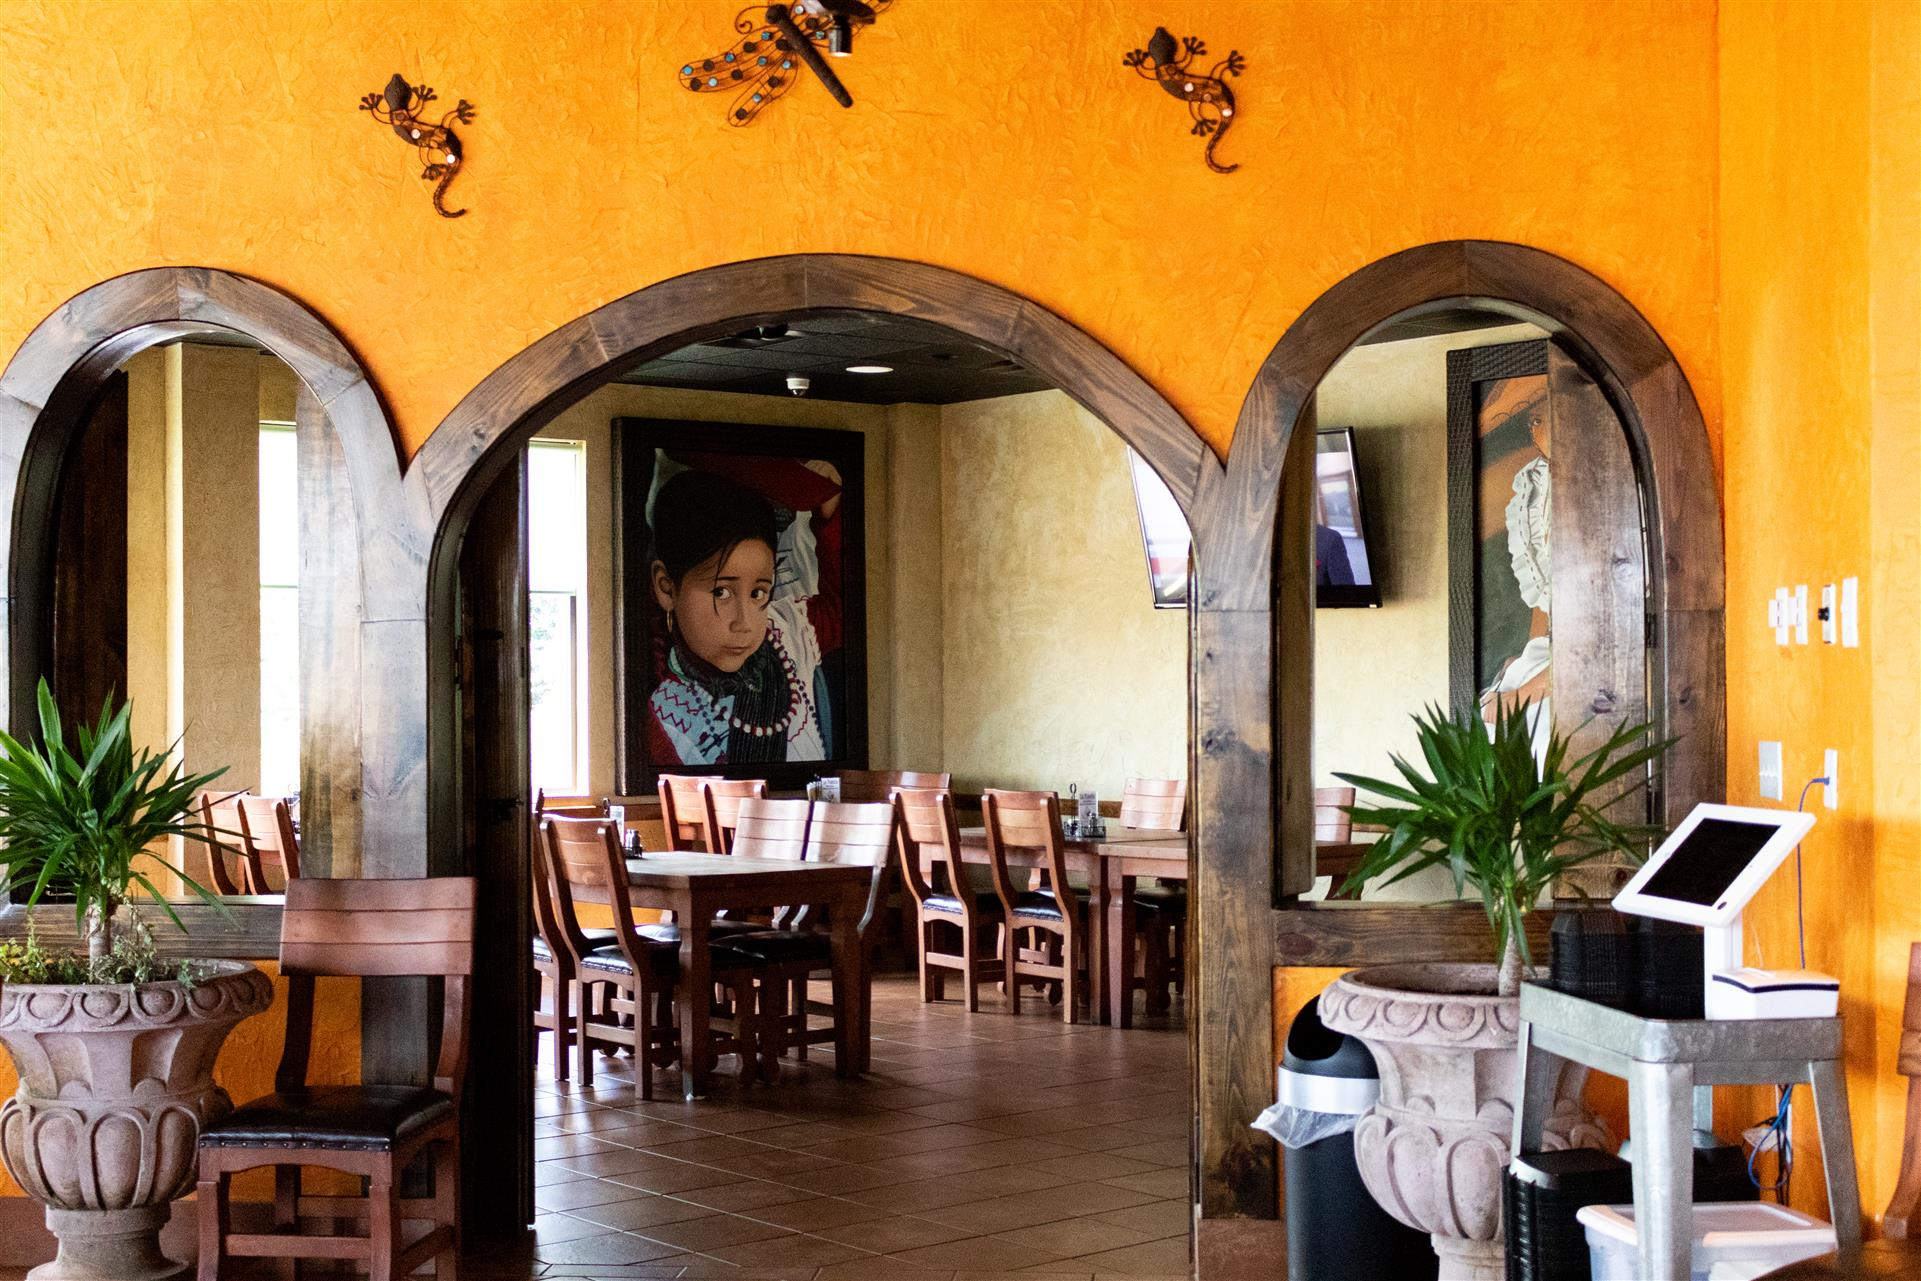 inside the la fuente mexican restaurant showcasing the tables, chairs and decorations on the wall